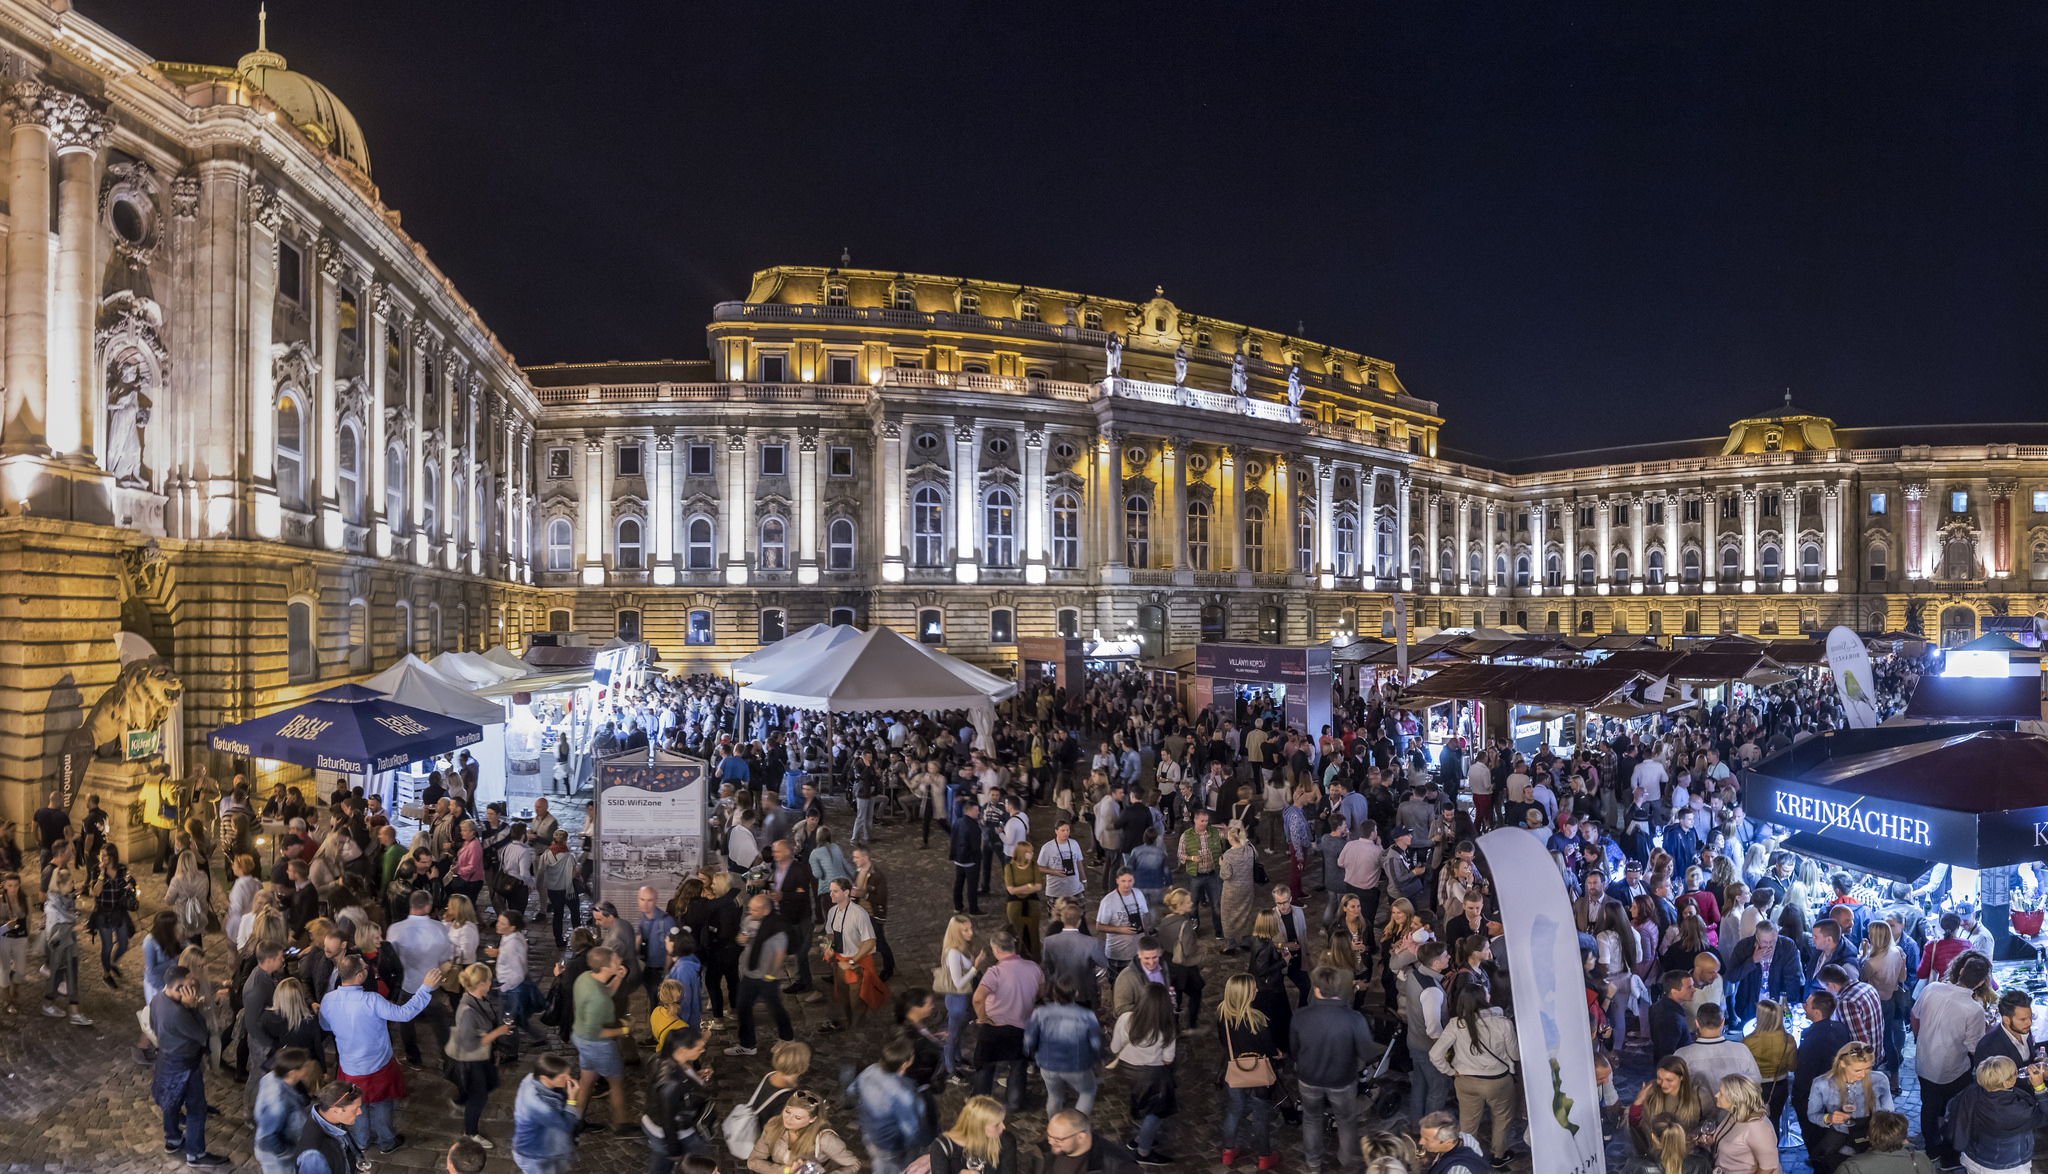 'Budapest Wine Festival', Royal Castle, 6 - 9 September